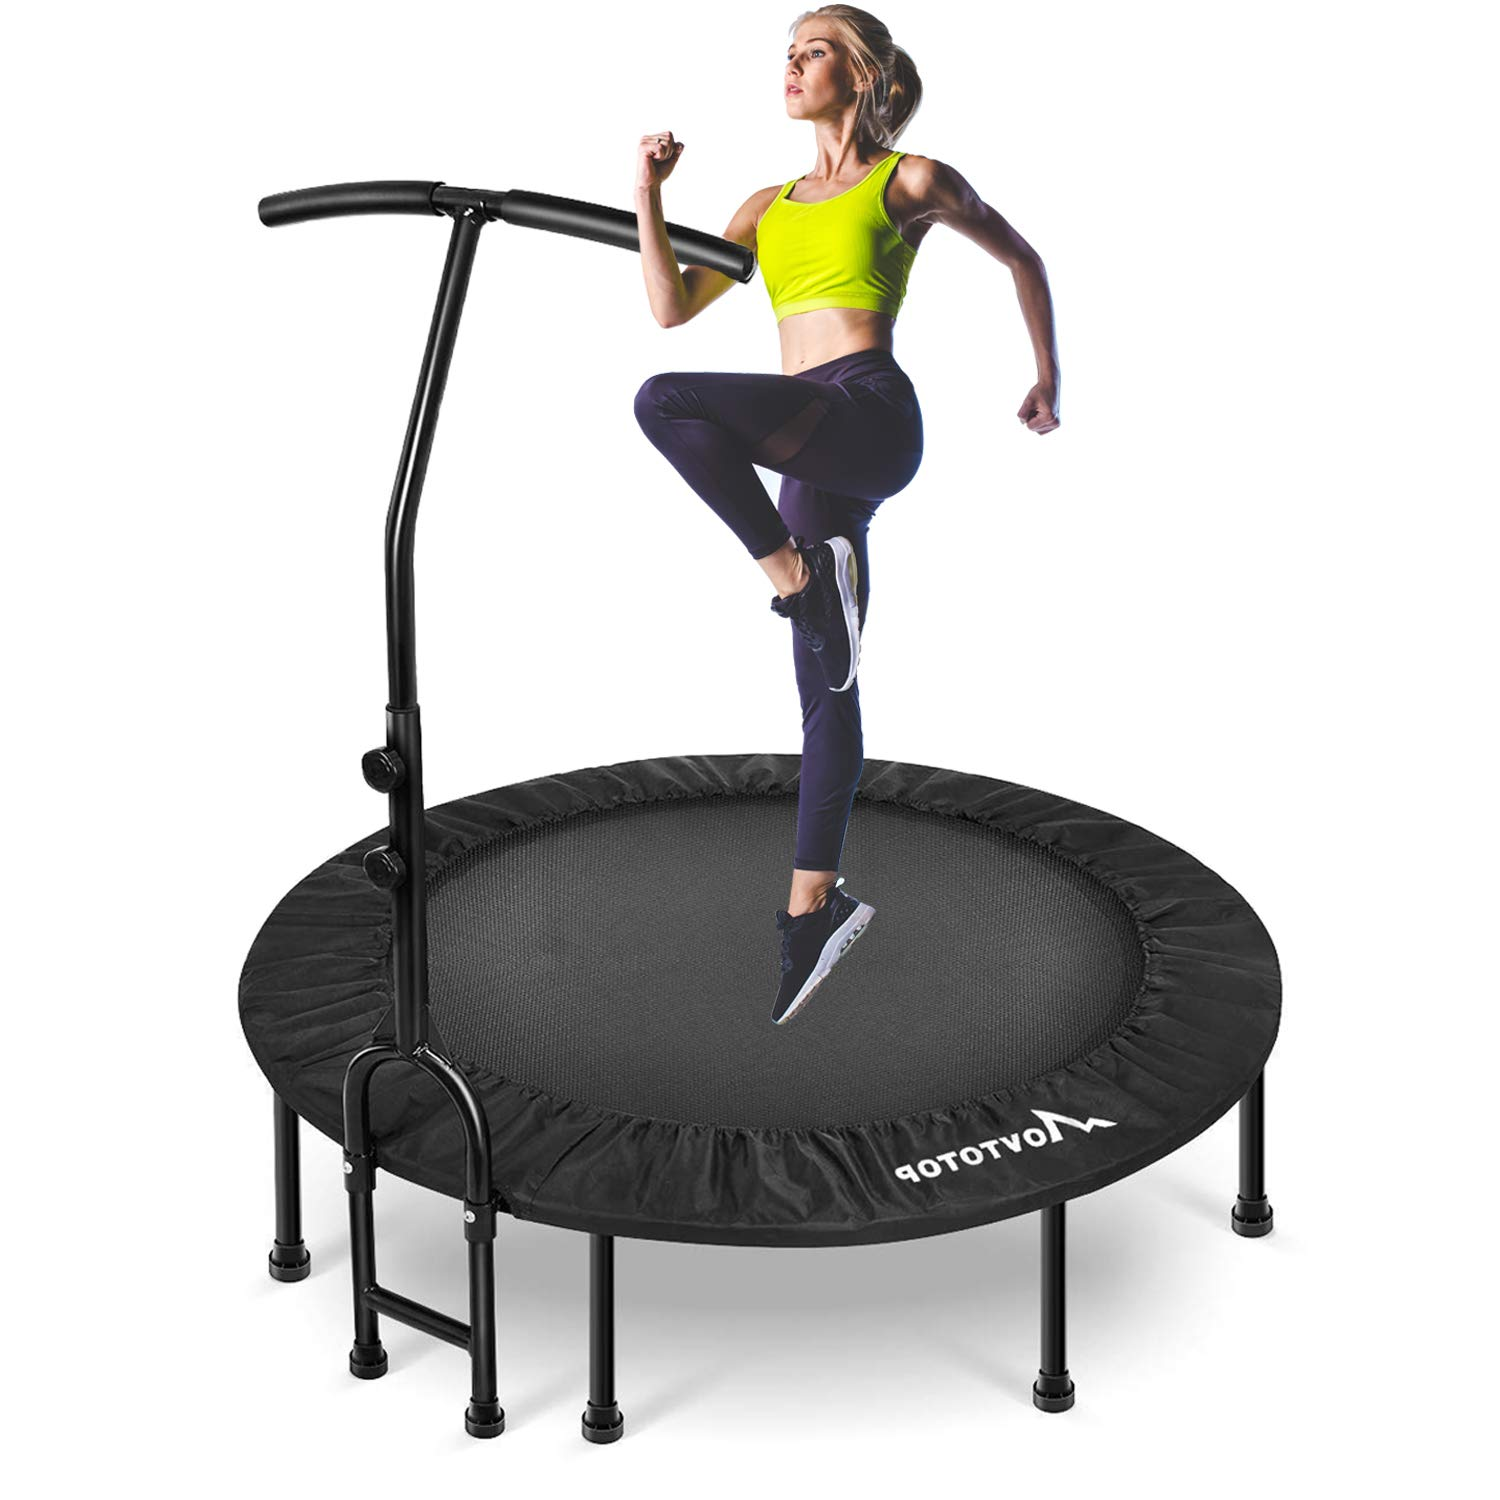 MOVTOTOP Indoor Trampoline, 48 Inch rebounder with Adjustable Handrail and Safety Pad, Fitness Trampoline for Kids Adults Max Load 220lbs